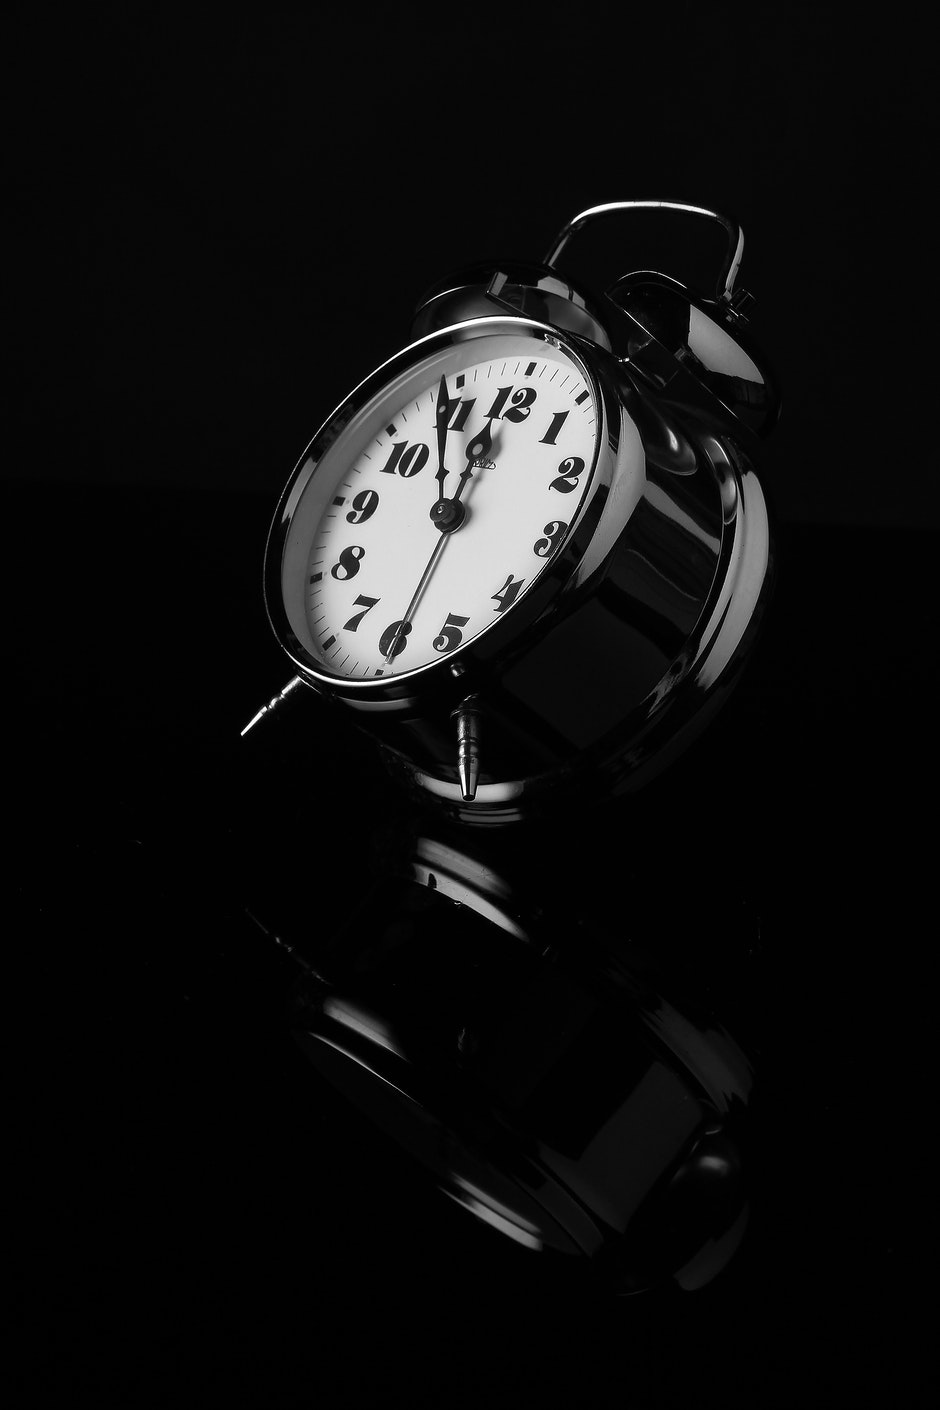 Black Analog Alarm Clock